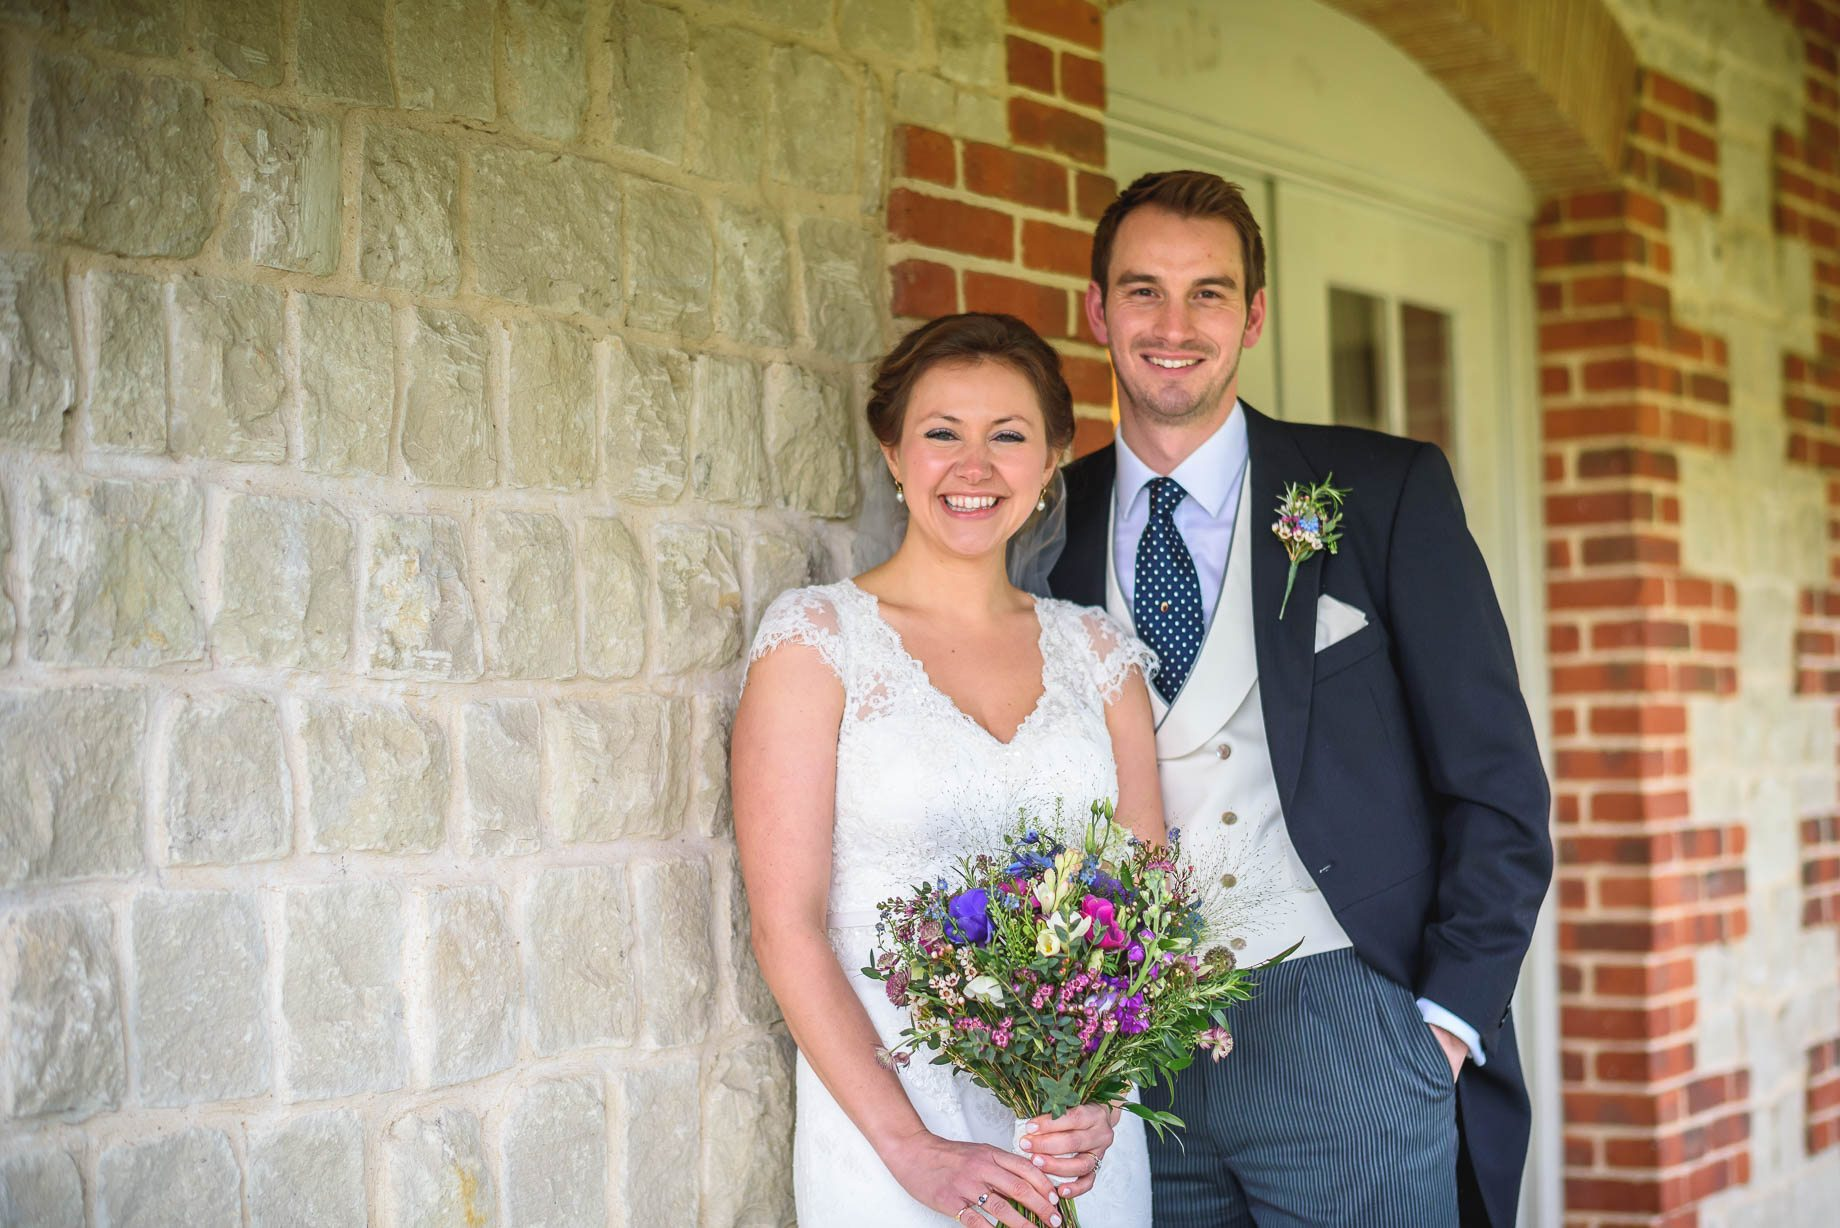 Bury Court Barn wedding photography - Ashley and Henry by Guy Collier Photography (61 of 188)